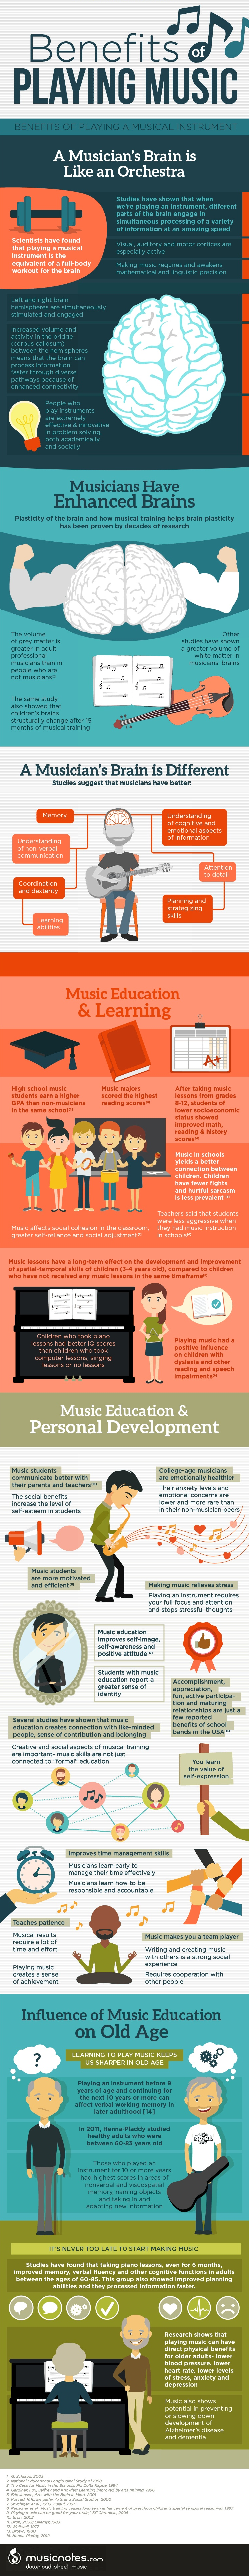 benefits-of-playing-music-infographic-musicnotes